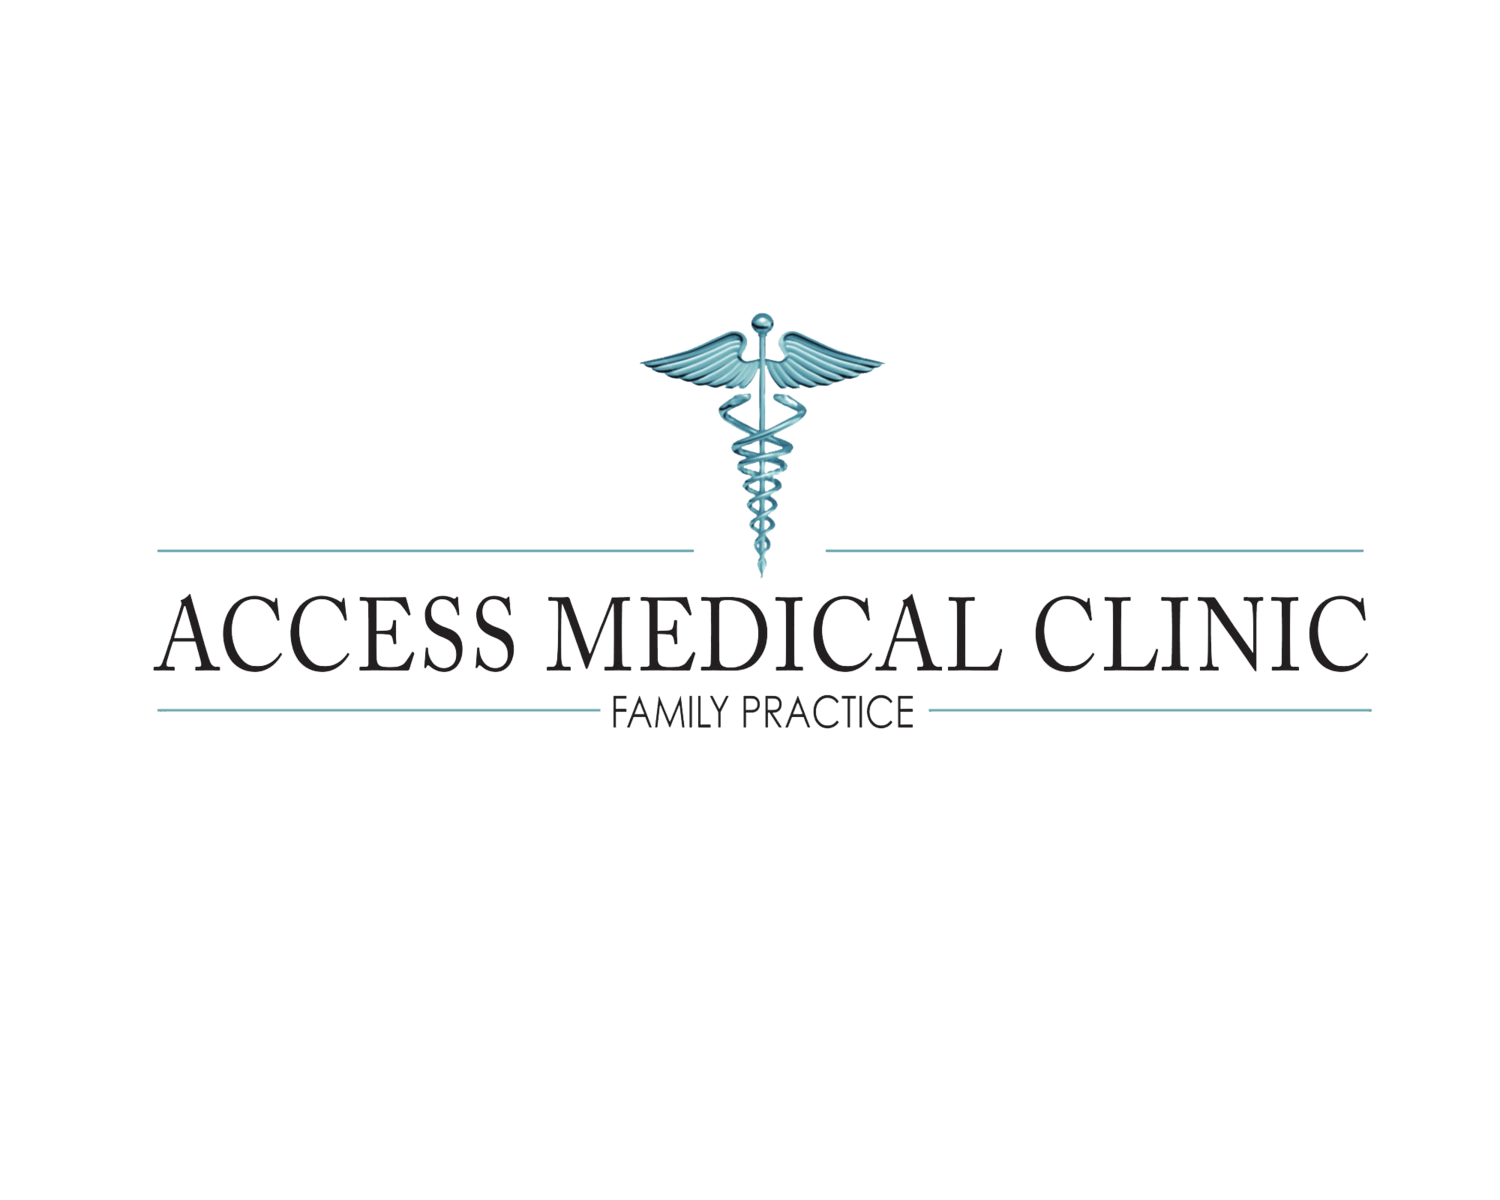 Access Medical Clinic